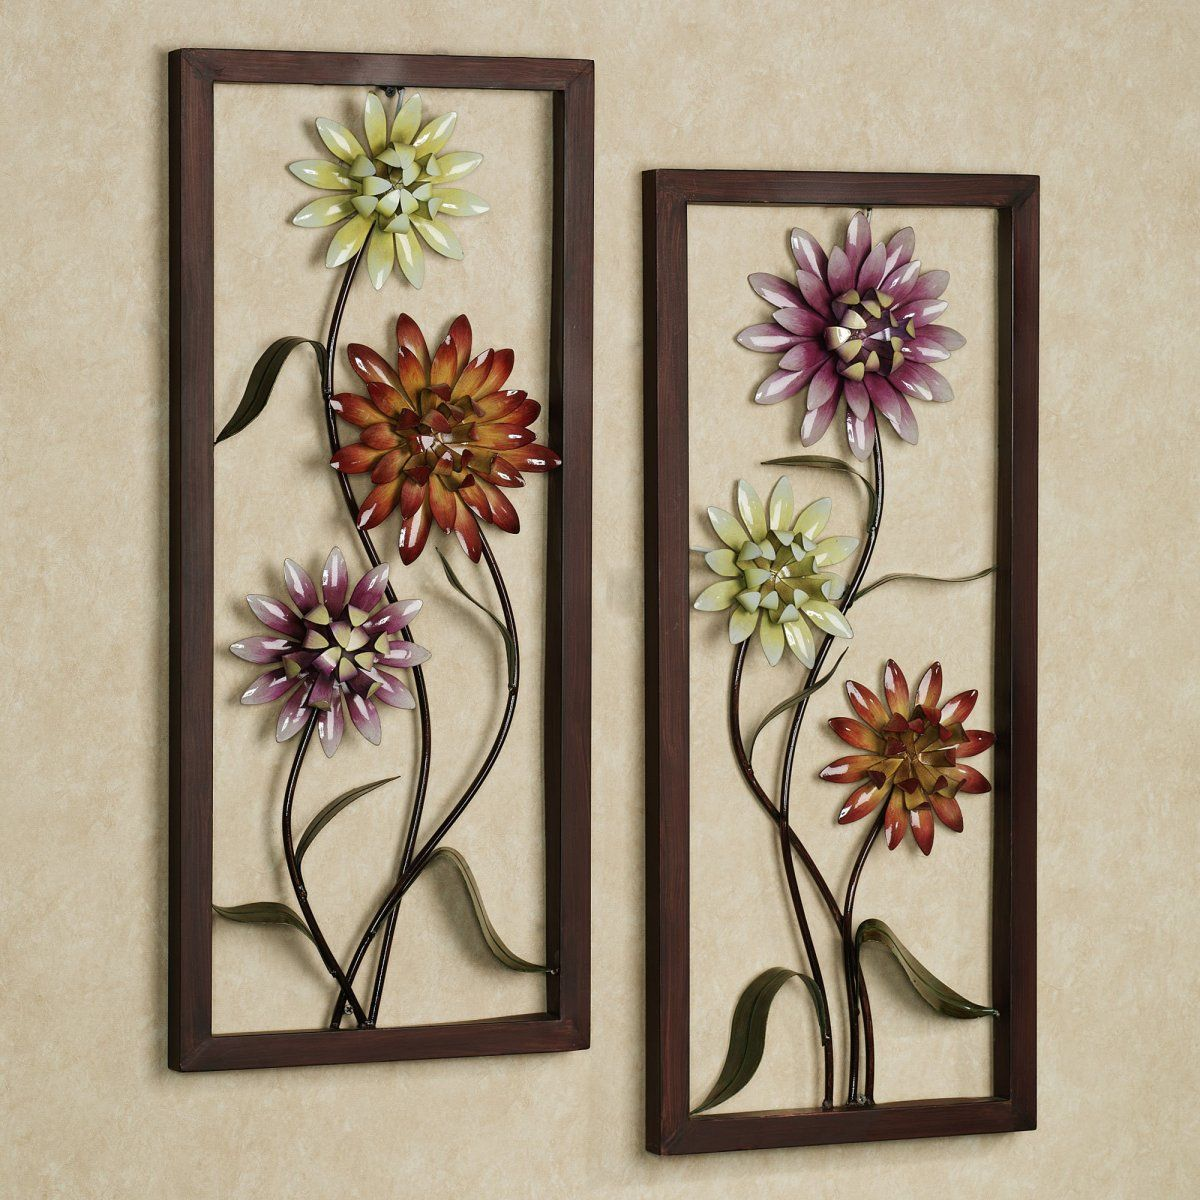 Amazing colorful metal floral wall art in wooden frame for modern living room decoration 33 interior decoration designs in smart floral arrangements